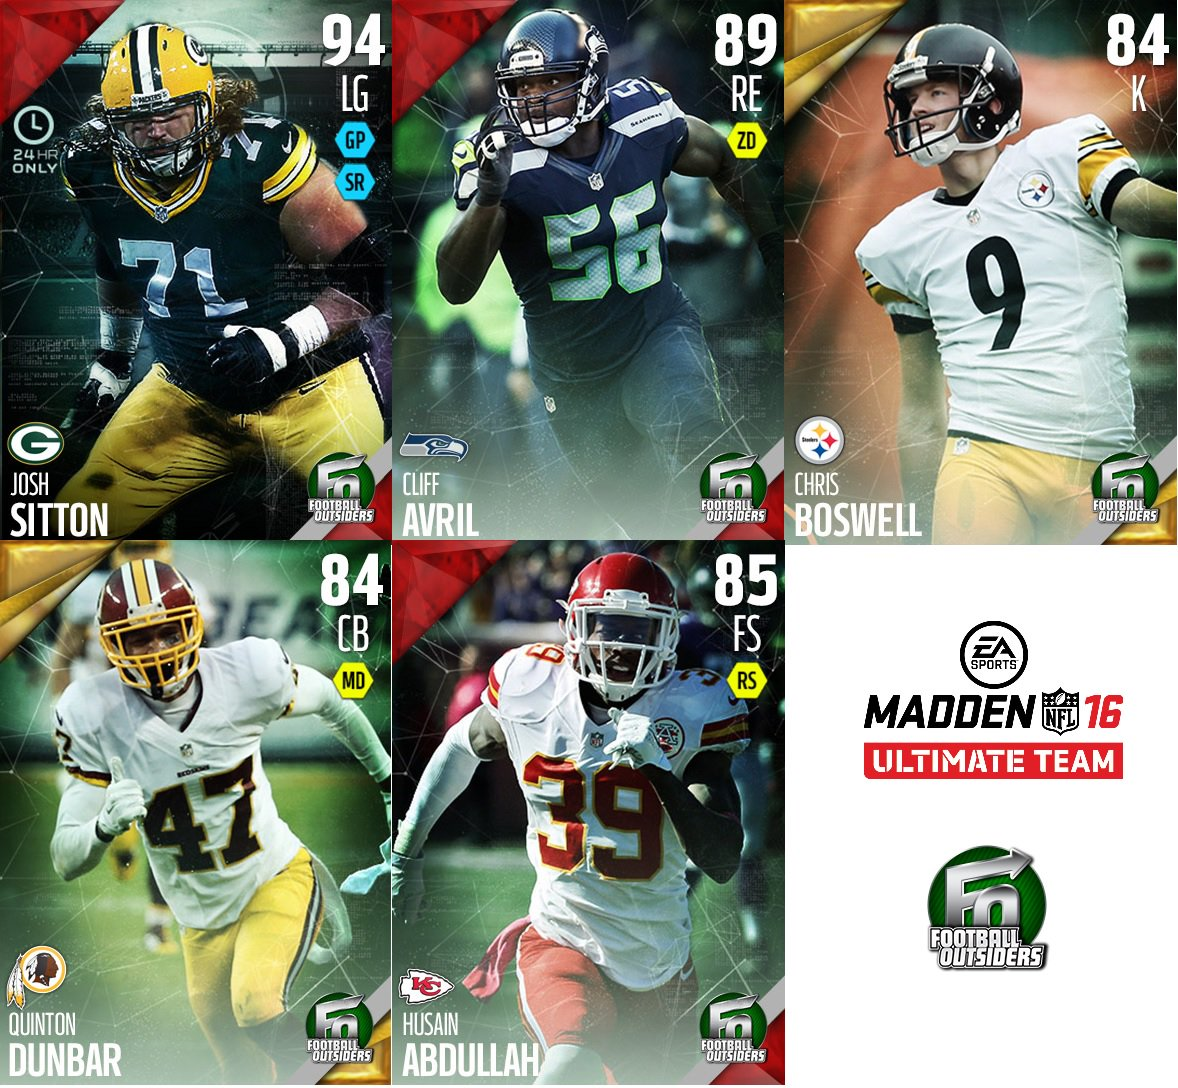 Here's a look at new Football Outsiders players available in @EASPORTS_MUT this morning! https://t.co/e9m6Ou89Ex